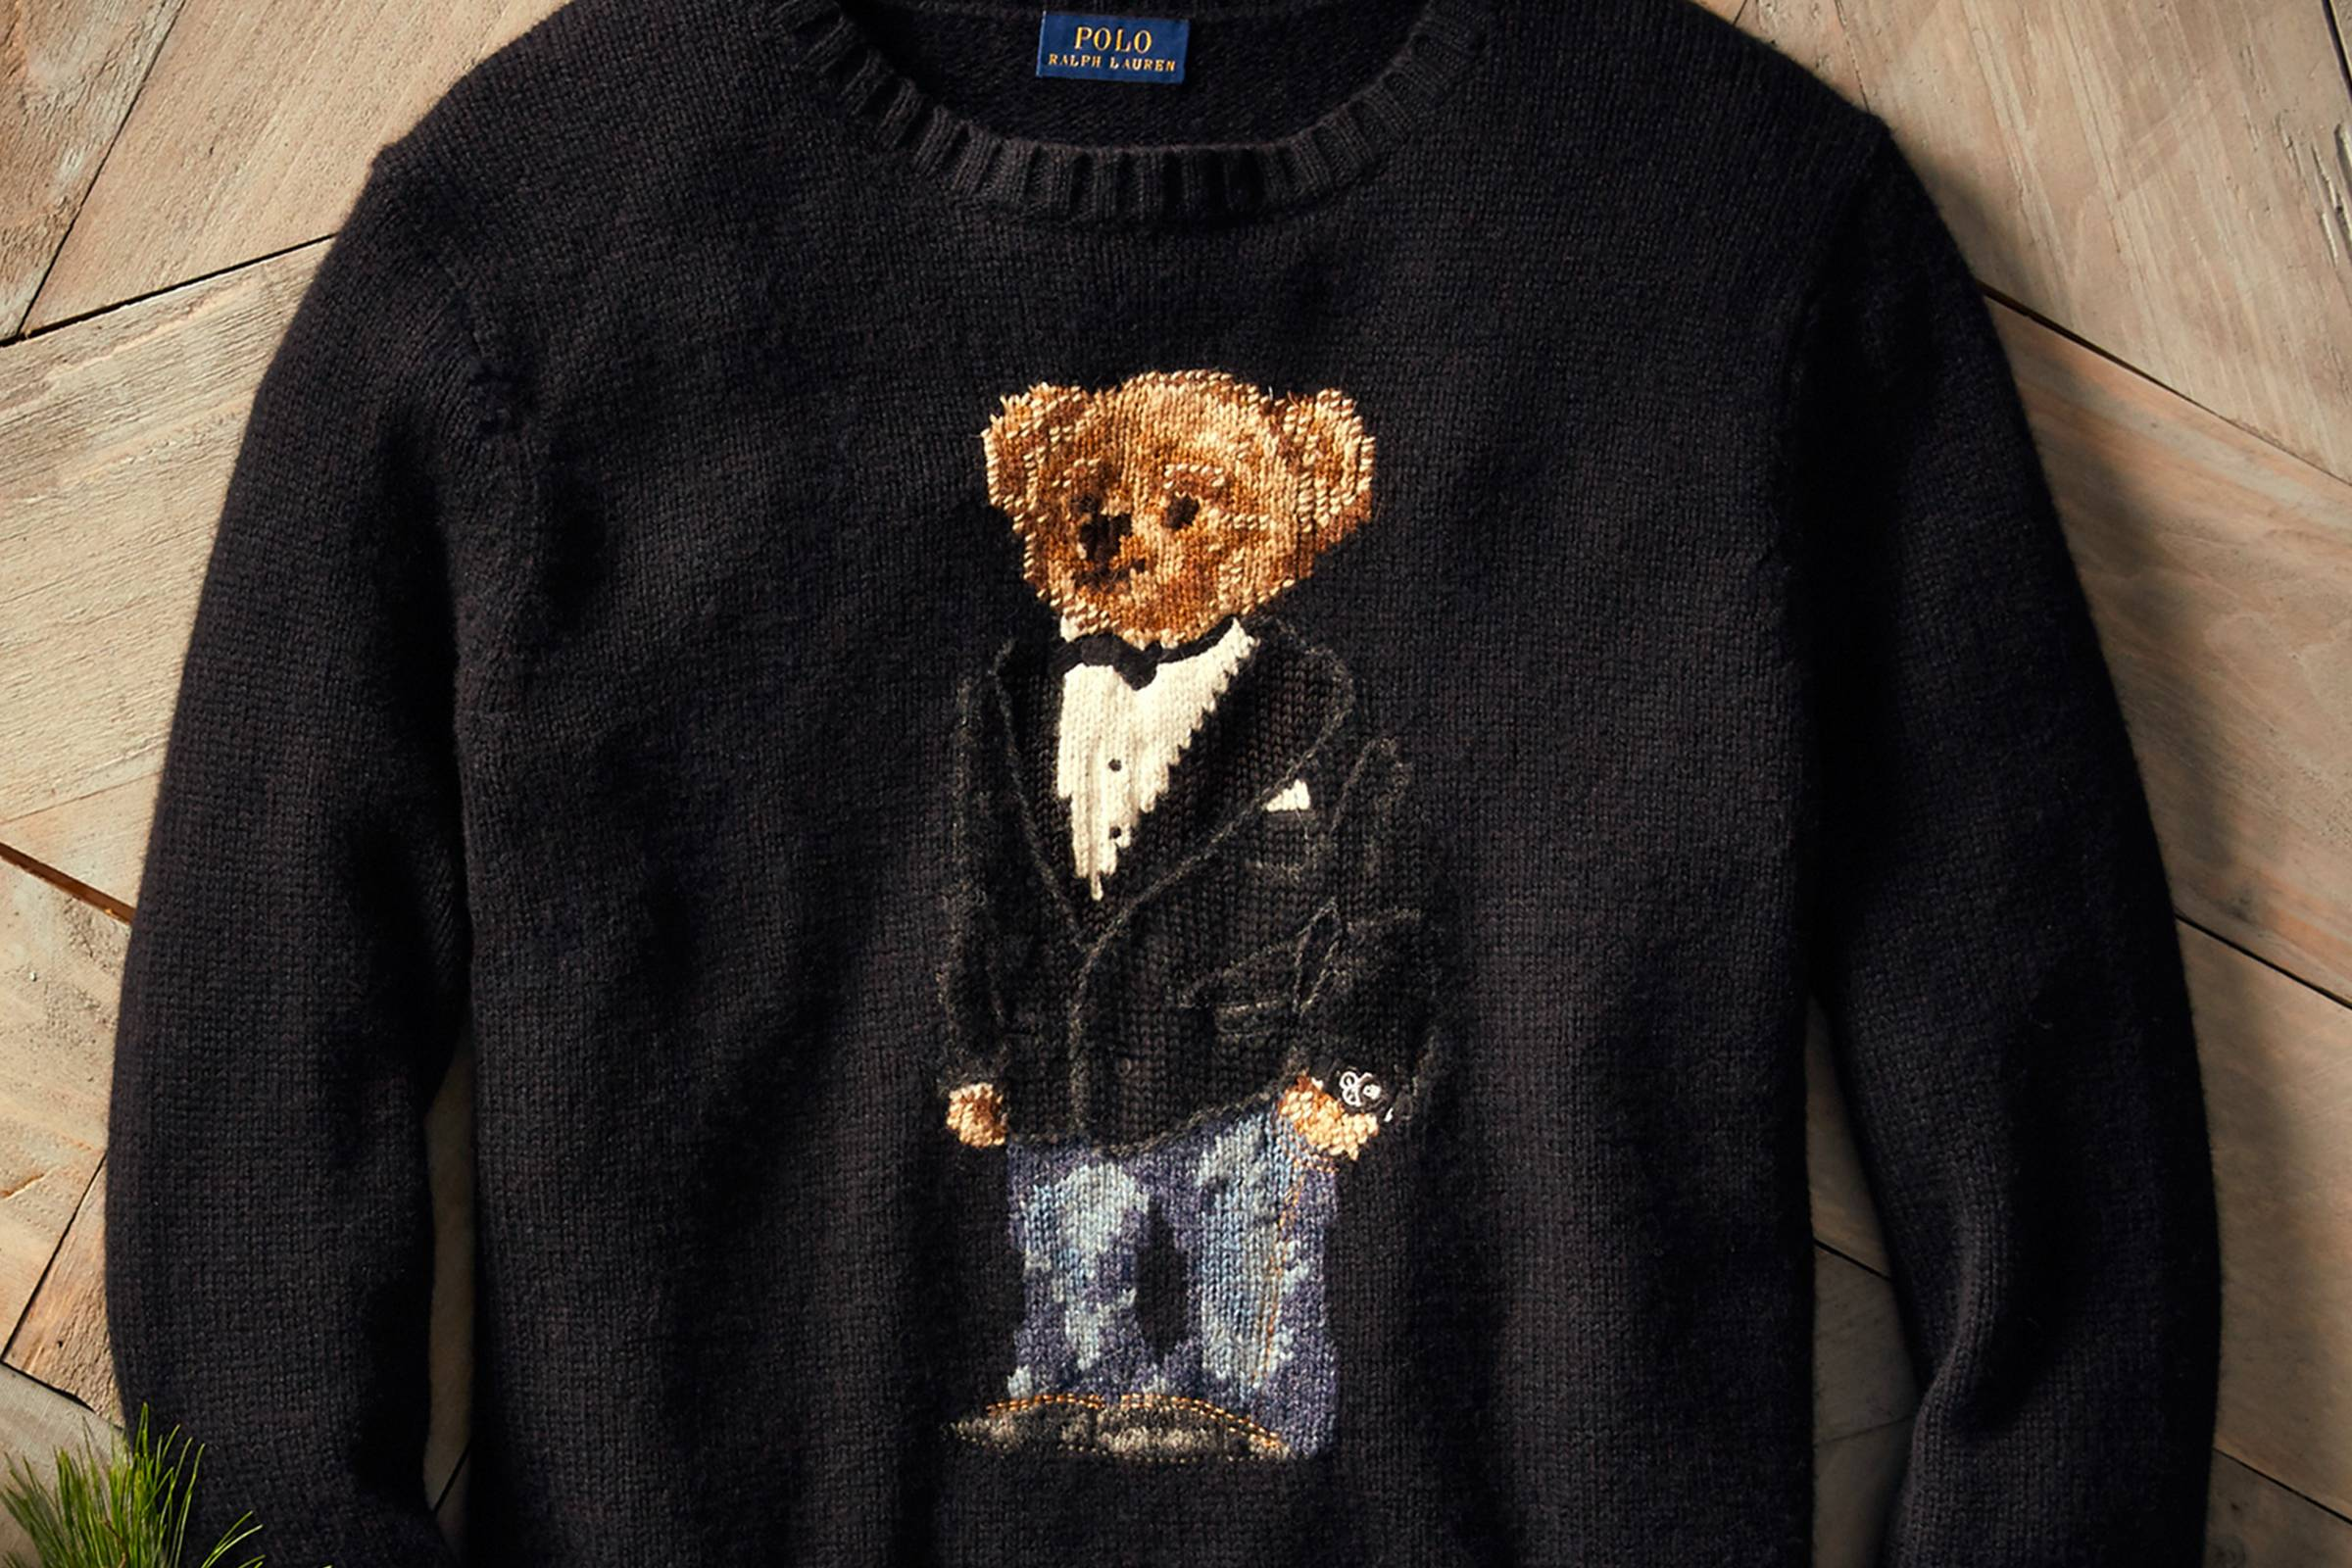 aaea11f8f An Abridged History of The Polo Bear - Ralph Lauren Polo Bear ...